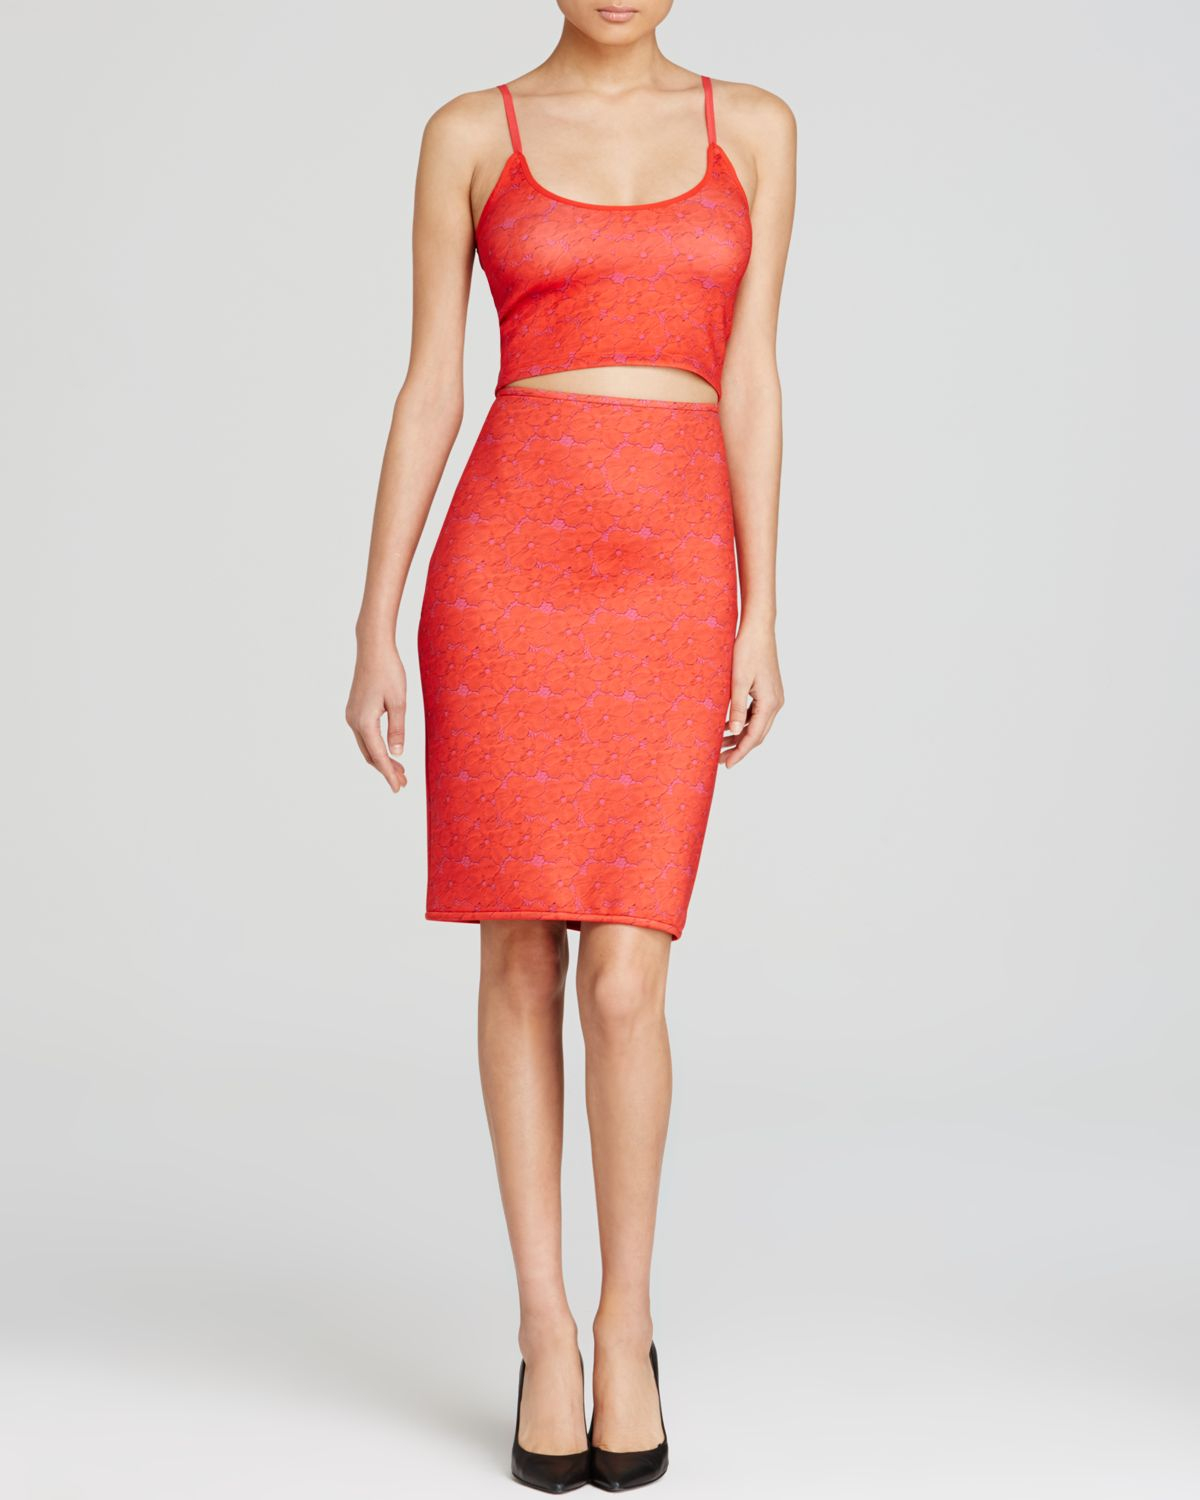 Cynthia rowley Crop Top - Red Lace in Red (Red Lace) | Lyst